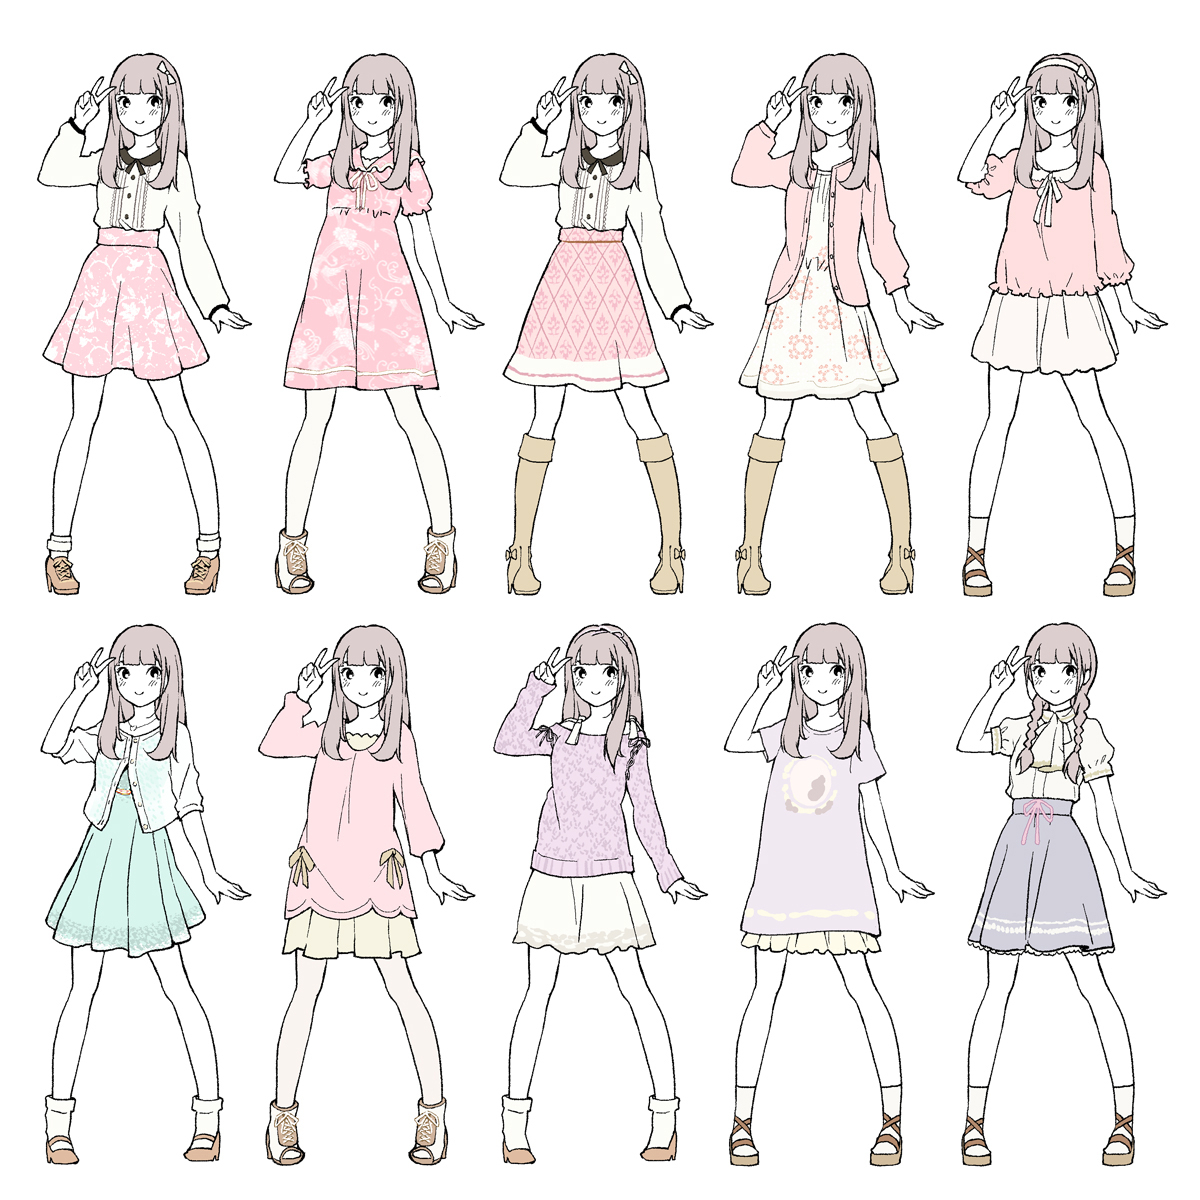 1200x1200 Cute Anime Outfits To Draw Cute Anime Outfits To Draw Cute Anime